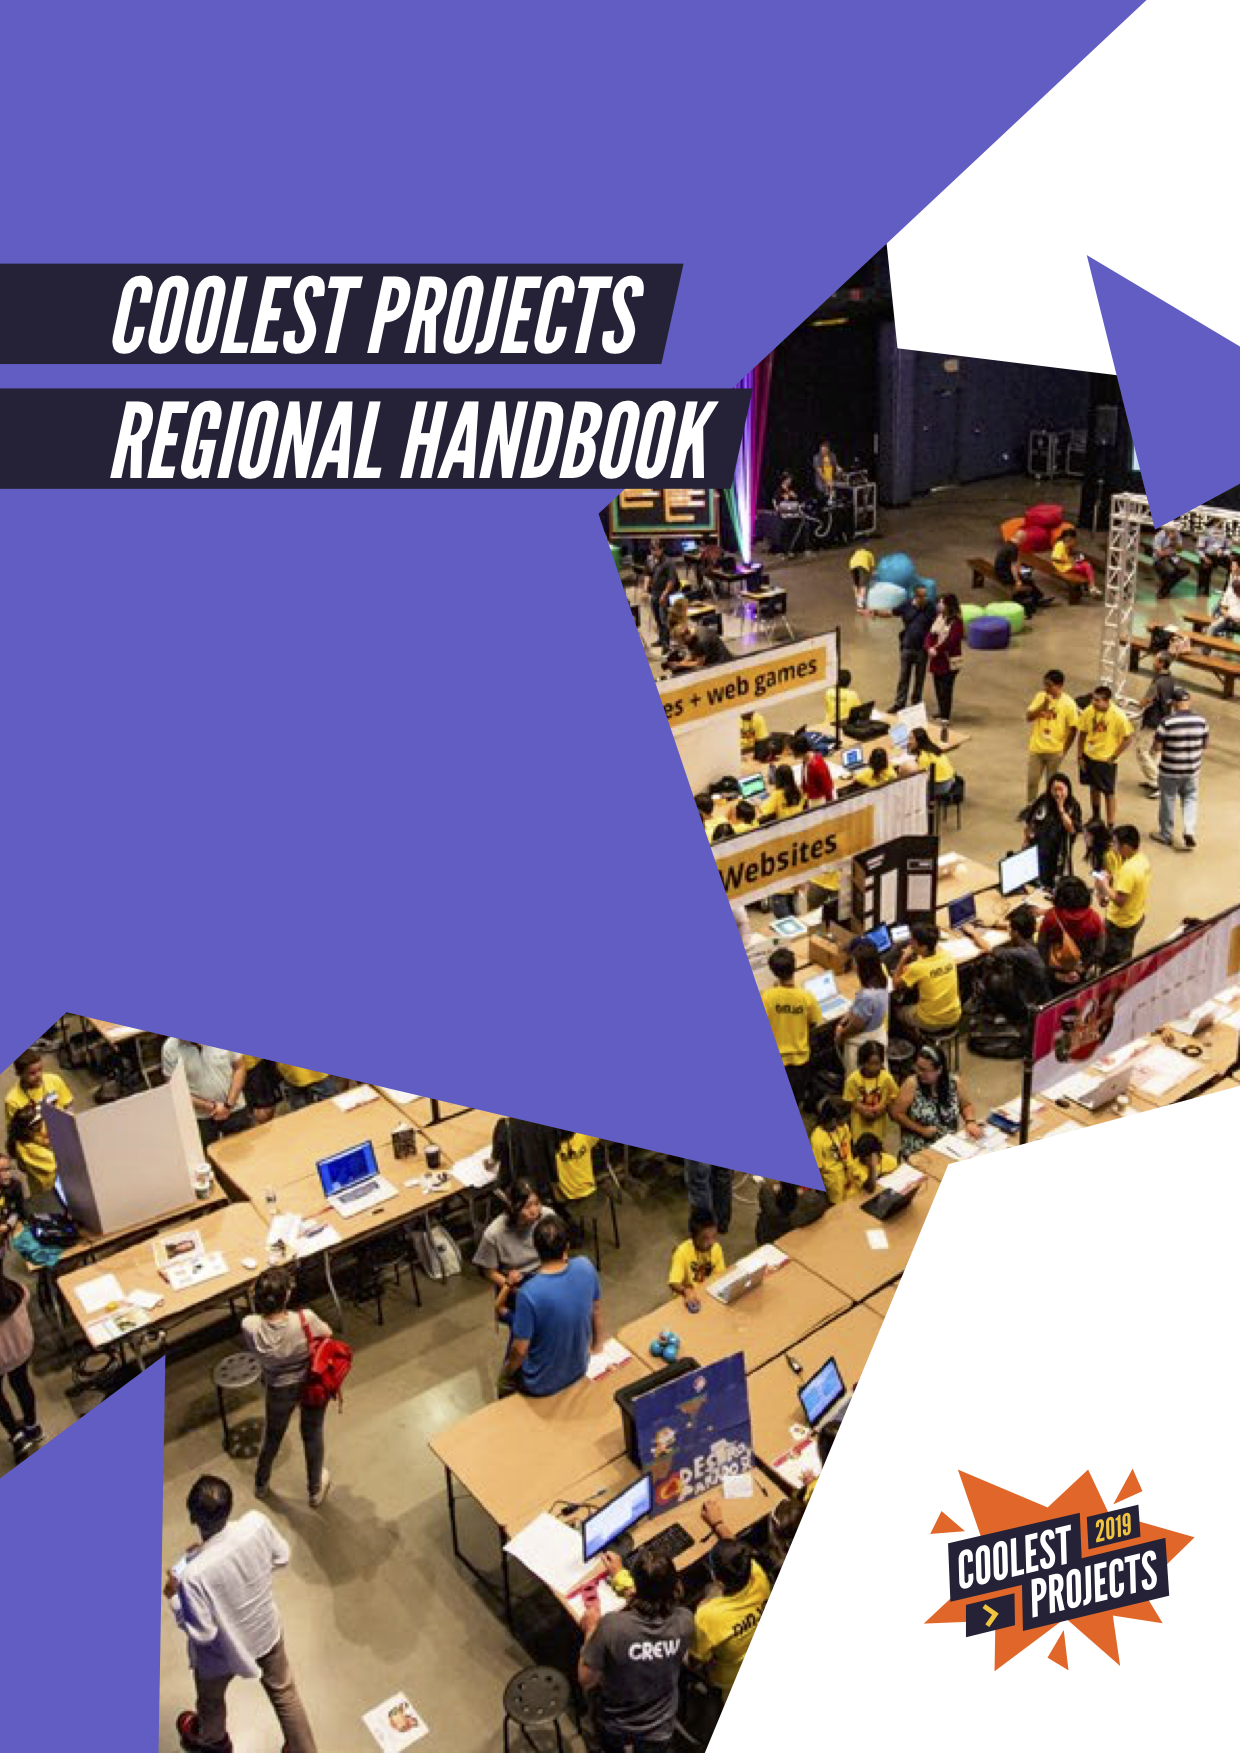 Our ultimate guide to running your own Coolest Projects event